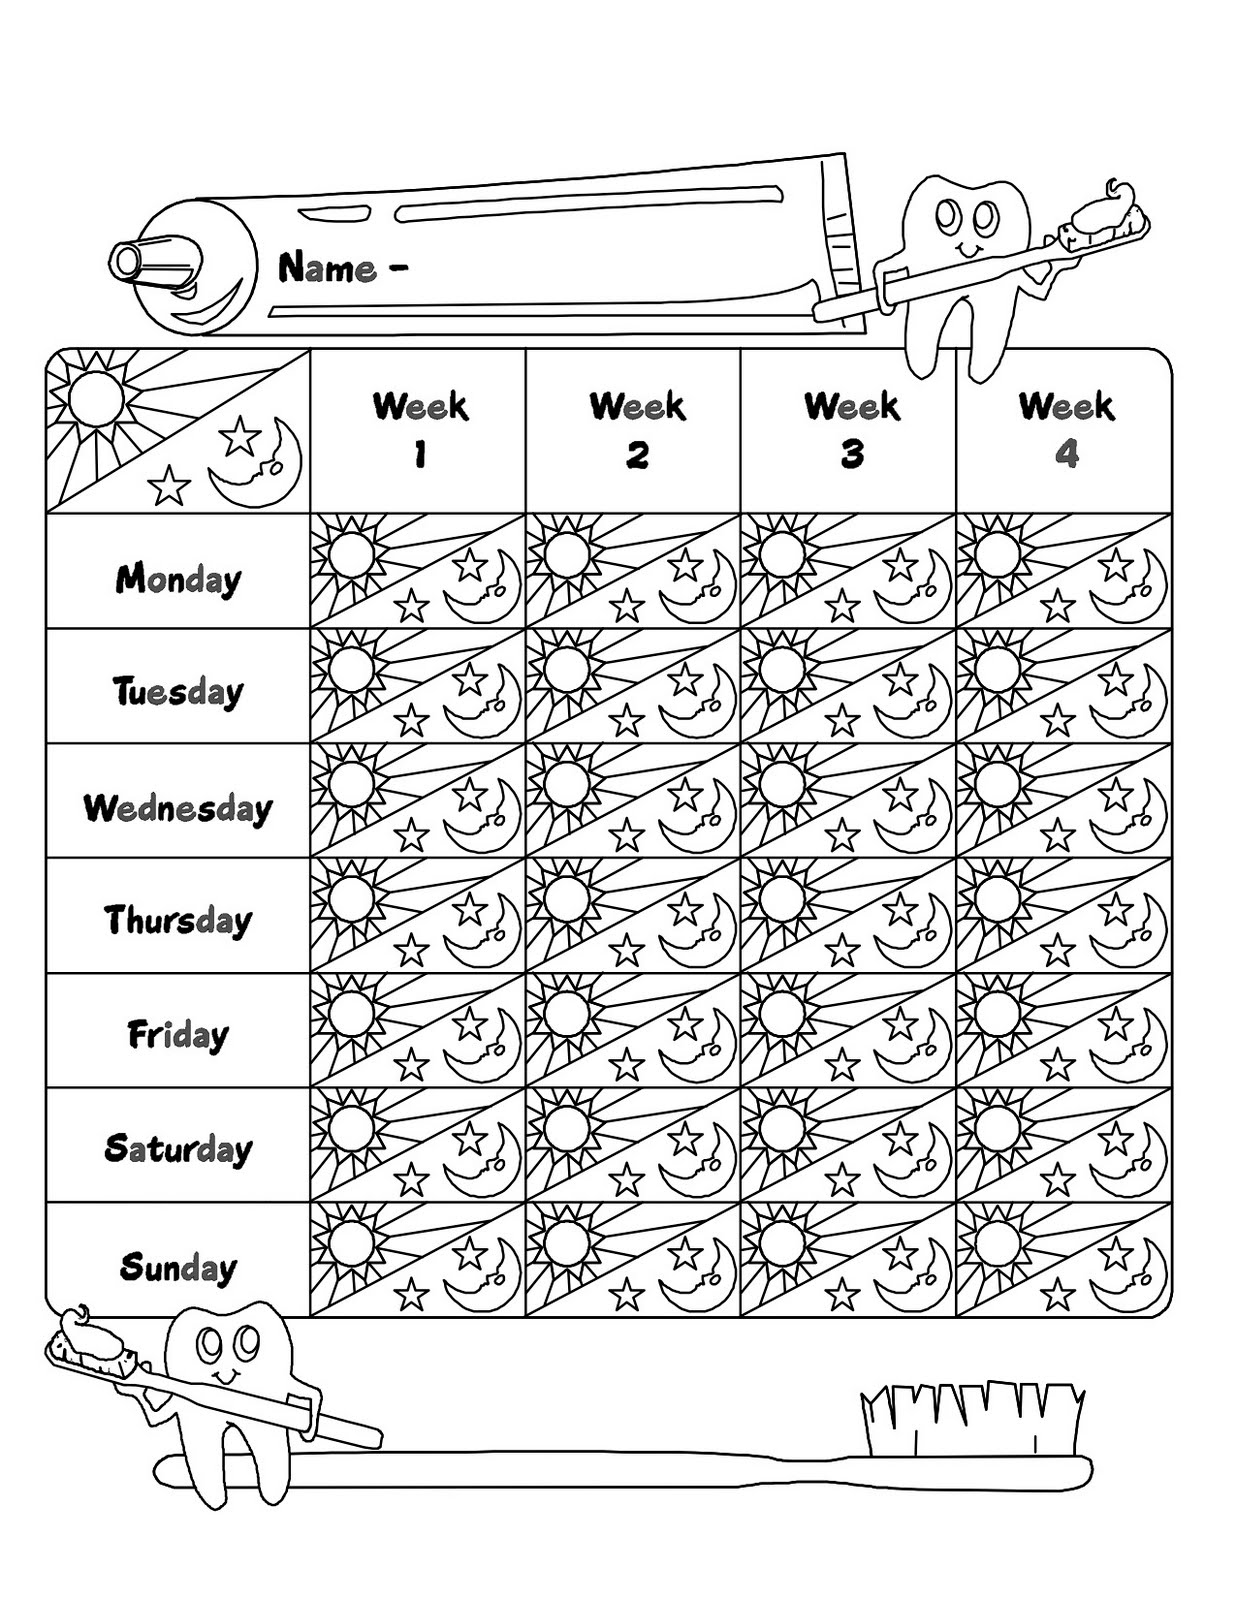 Coloring pages of teeth brushing charts ~ Teeth Brushing Coloring Chart Coloring Pages